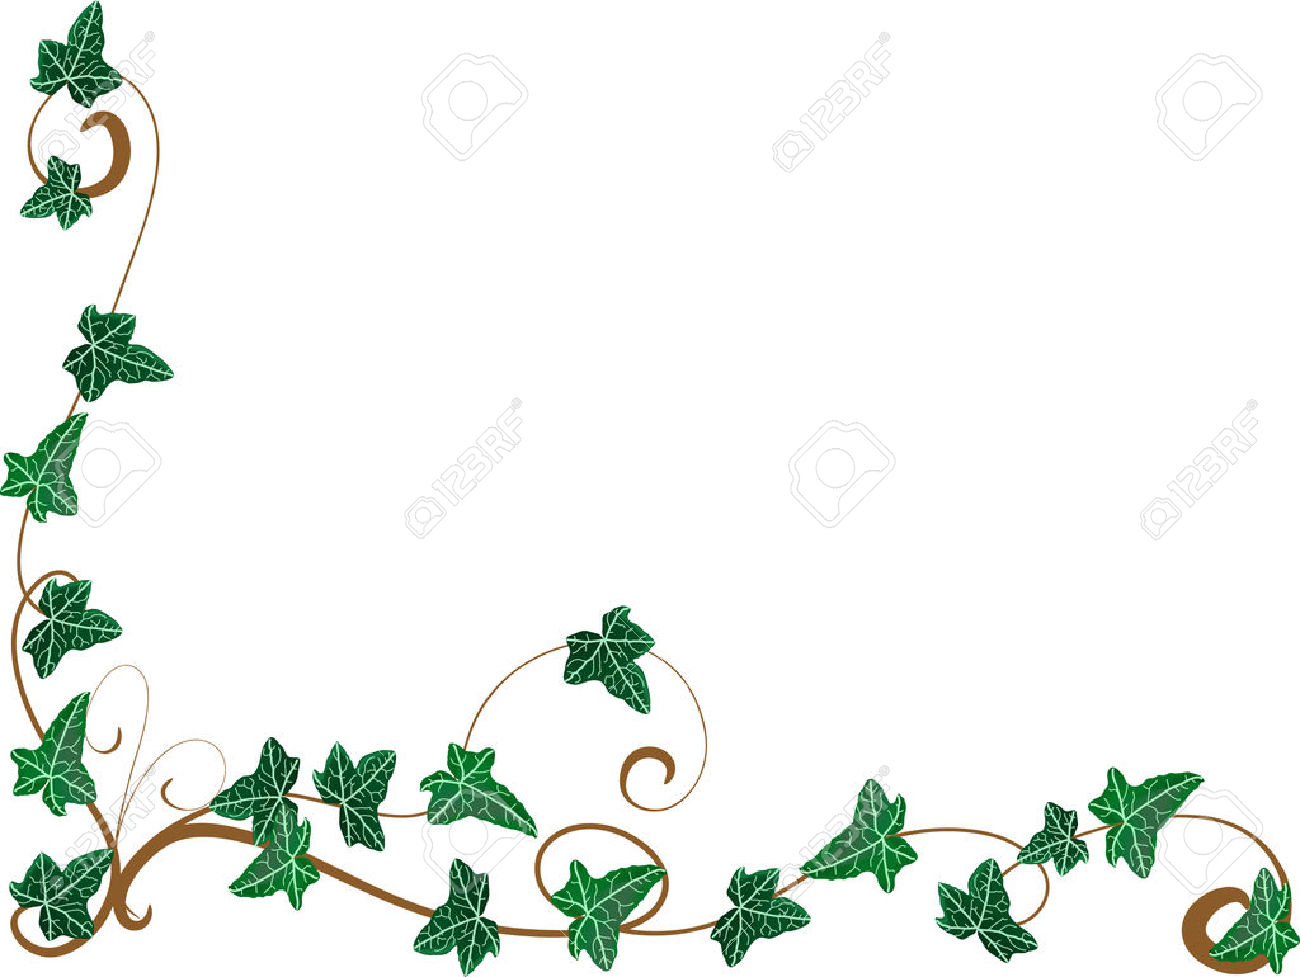 Scroll frames clipart border with watercolor ivy